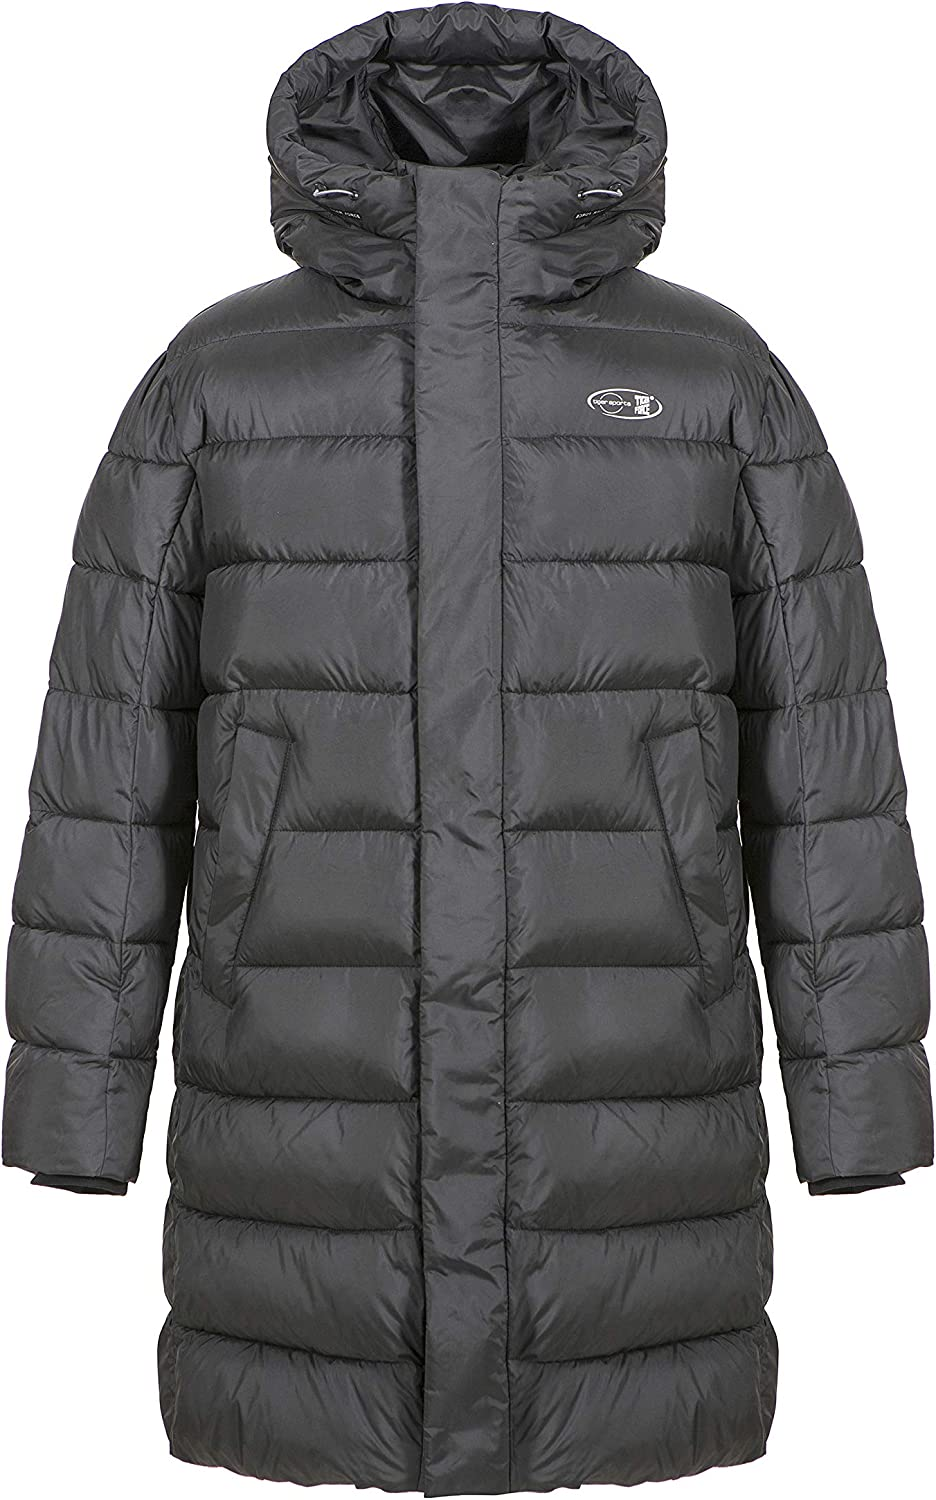 TIGER New arrival FORCE Popularity Winter Puffer Jacket for Hooded C Quilted Active Men